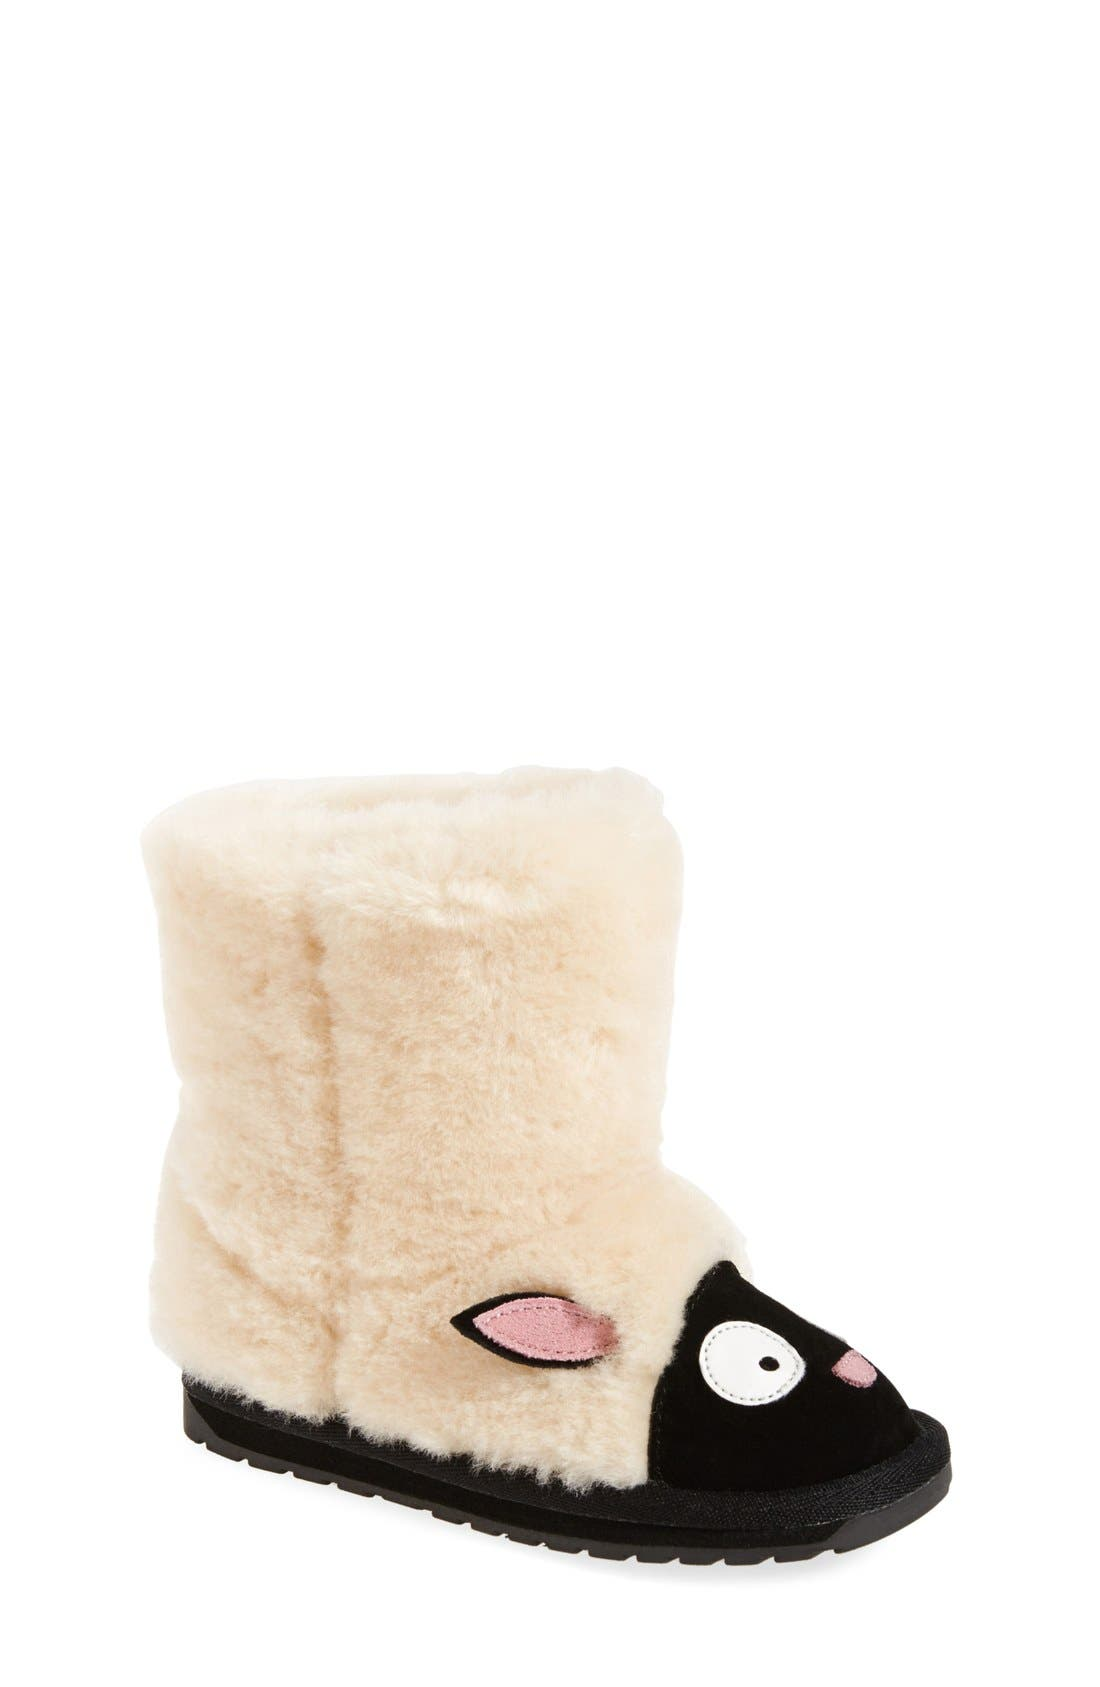 Little Creatures - Lamb Boot,                             Main thumbnail 1, color,                             NATURAL